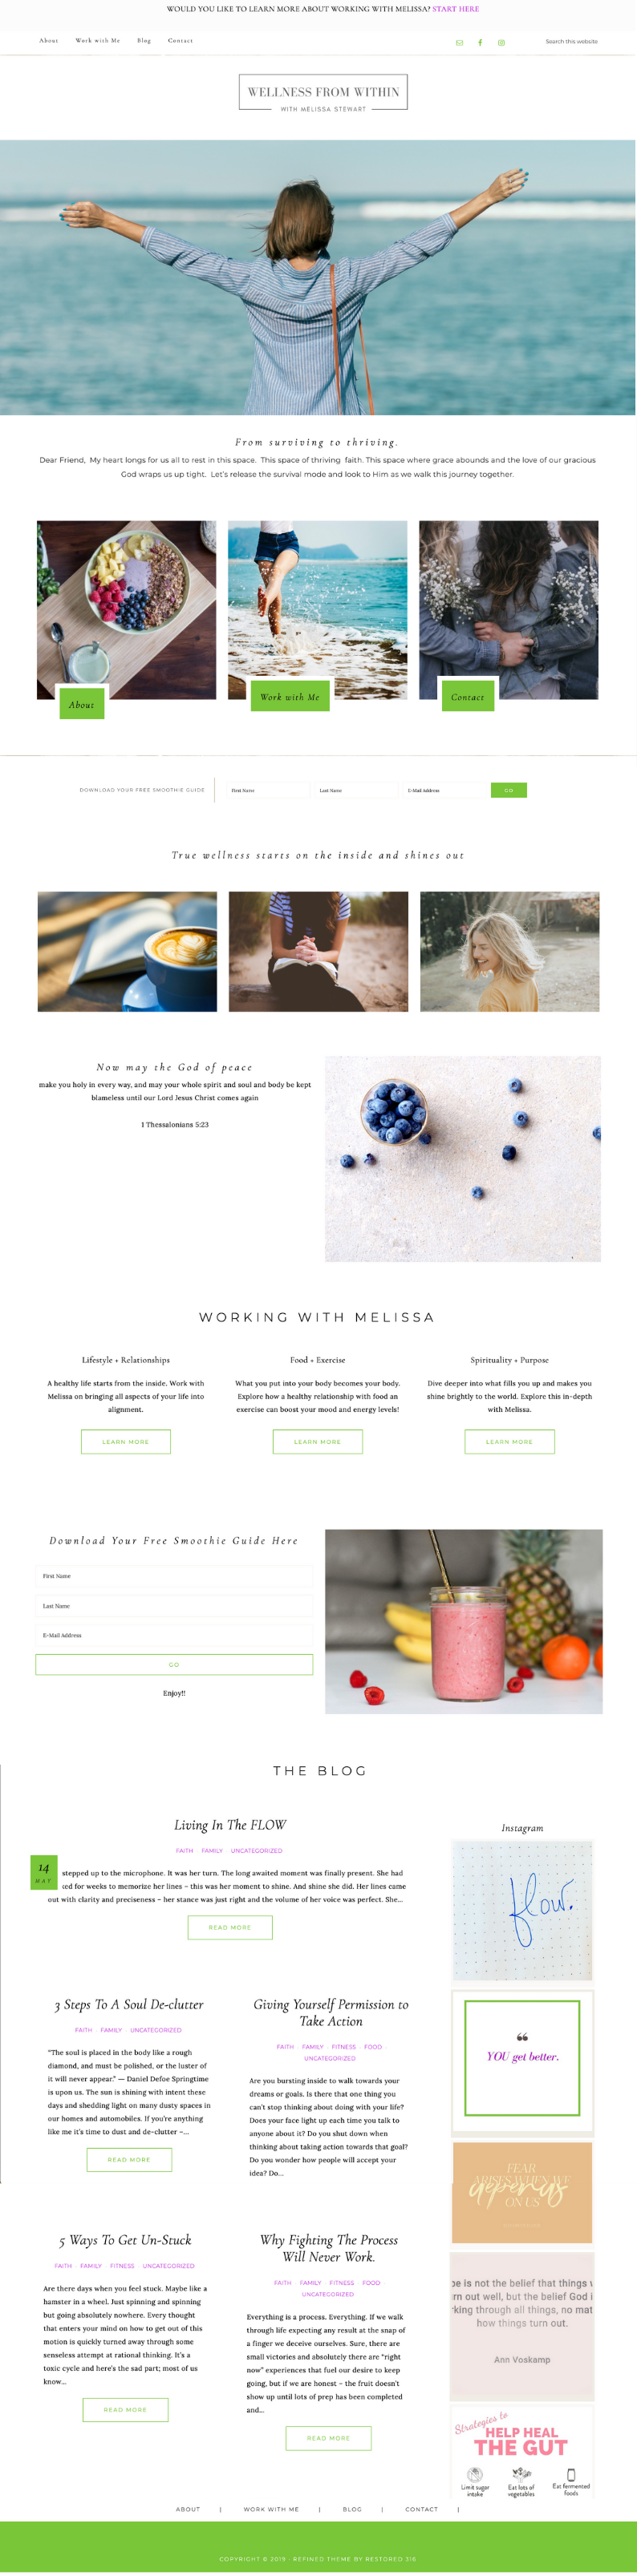 WordPress website design for yoga and wellness businesses.png